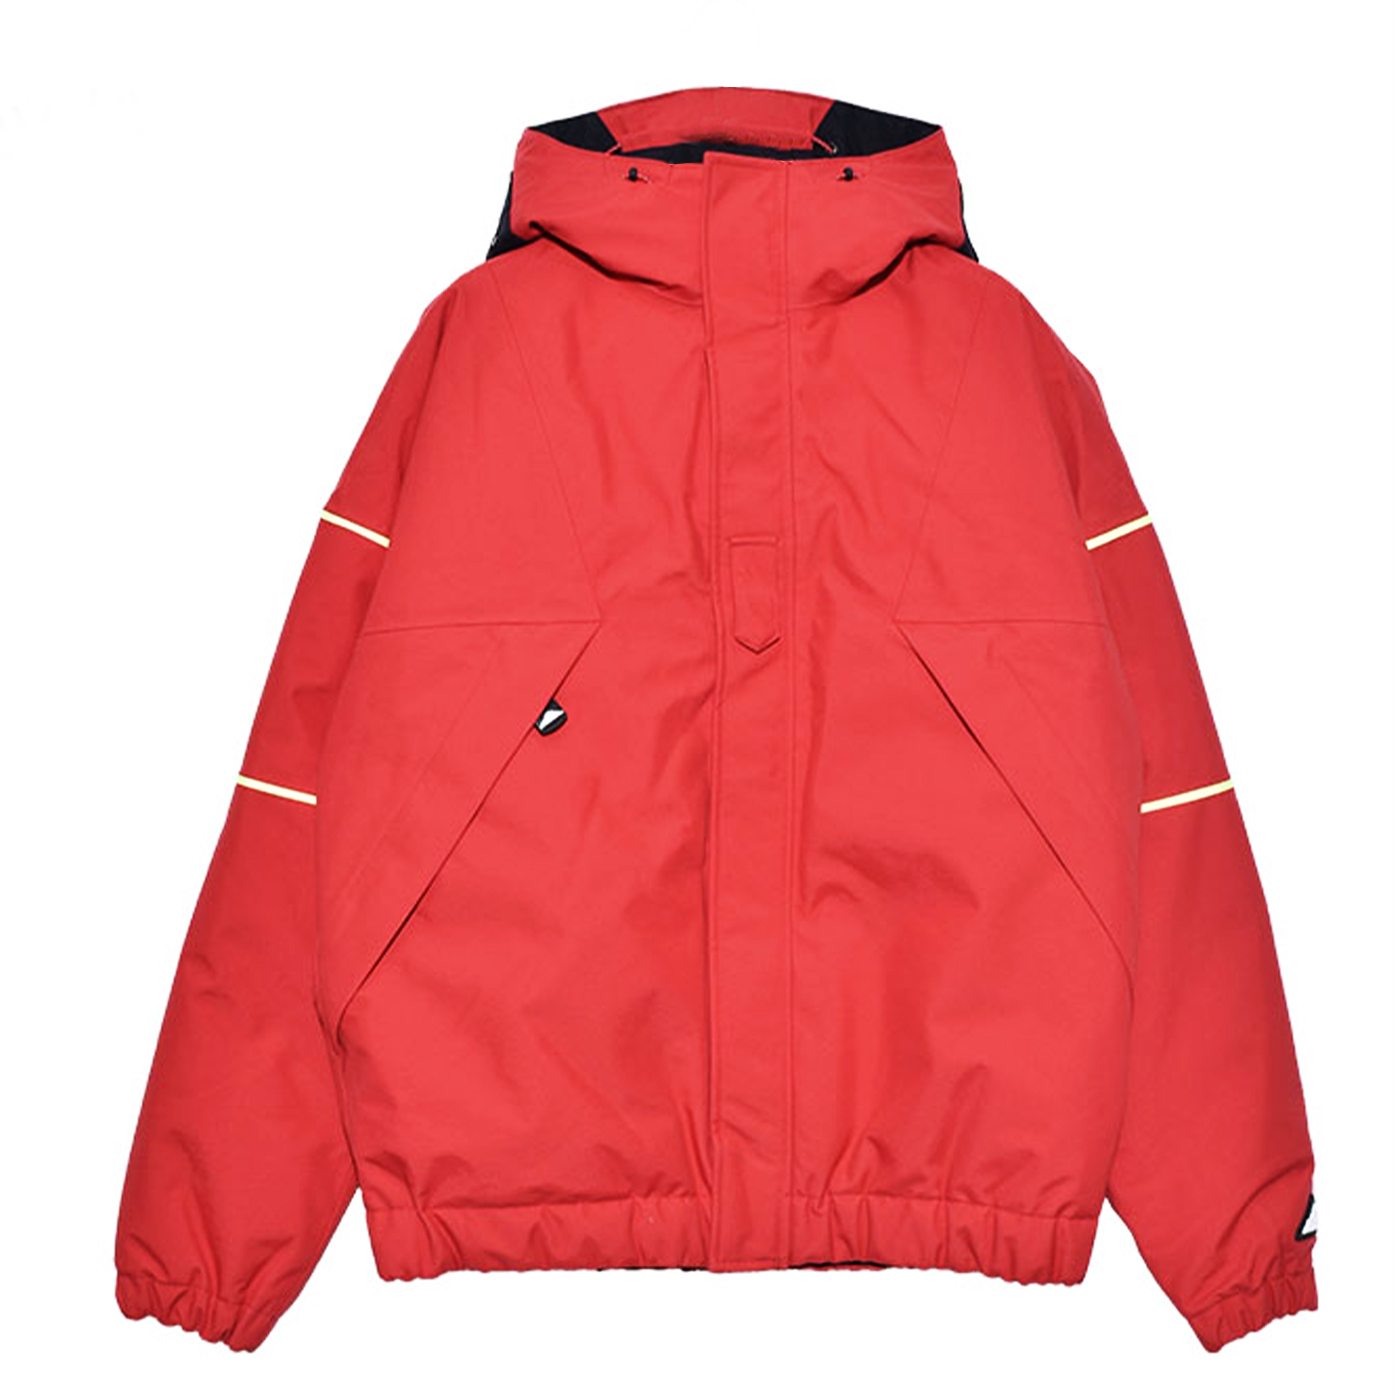 product: TRACK JACKET / color: RED 1